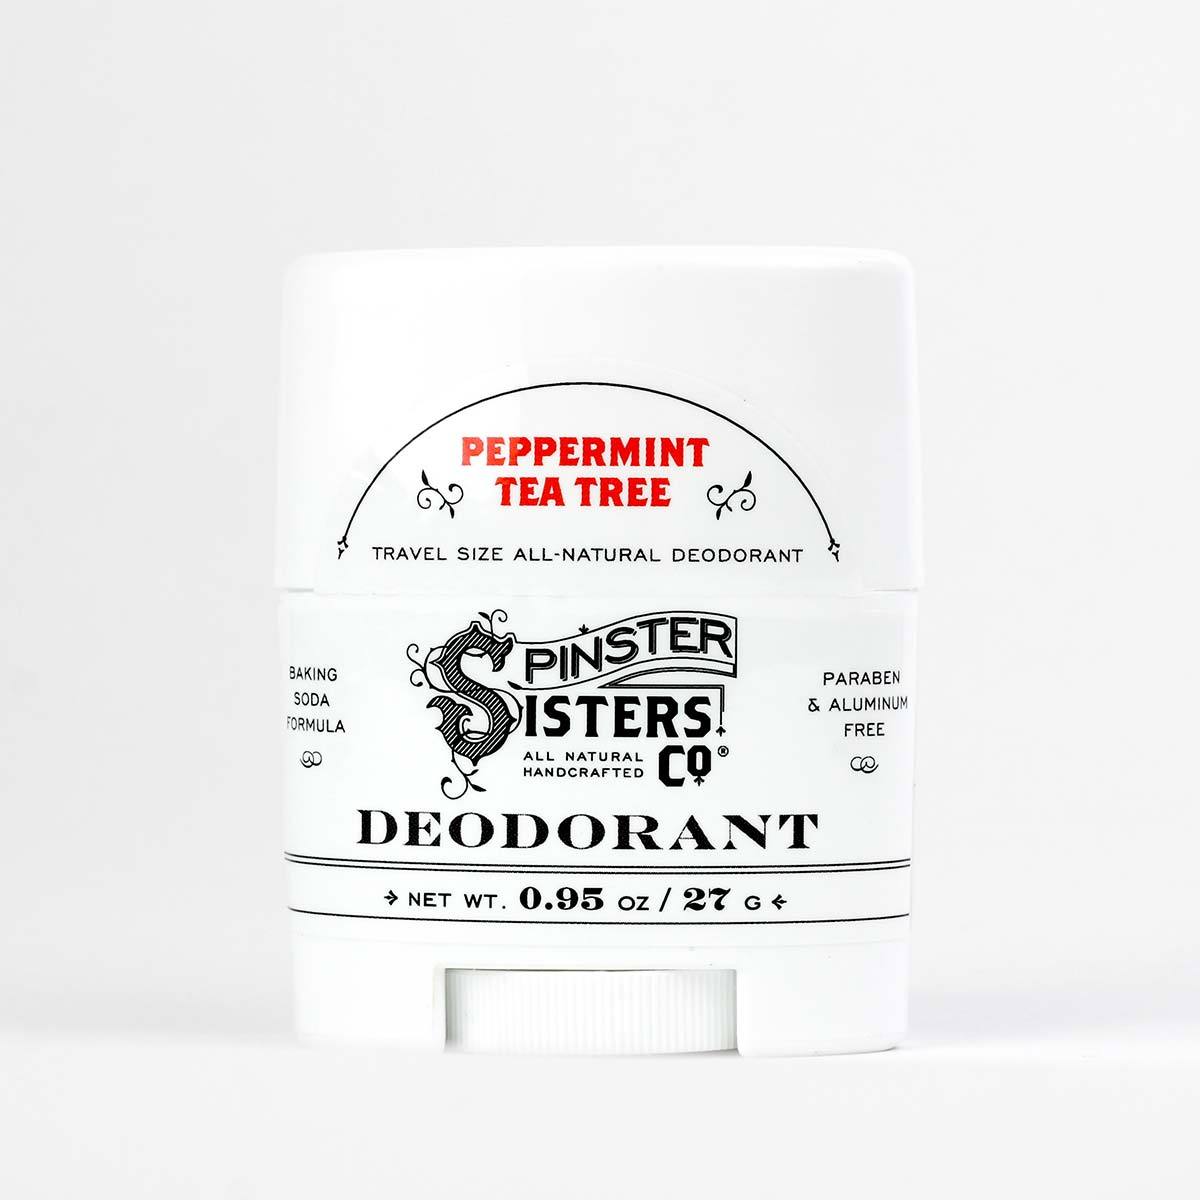 Deodorant Travel Size Apothecary Spinster Sisters Co